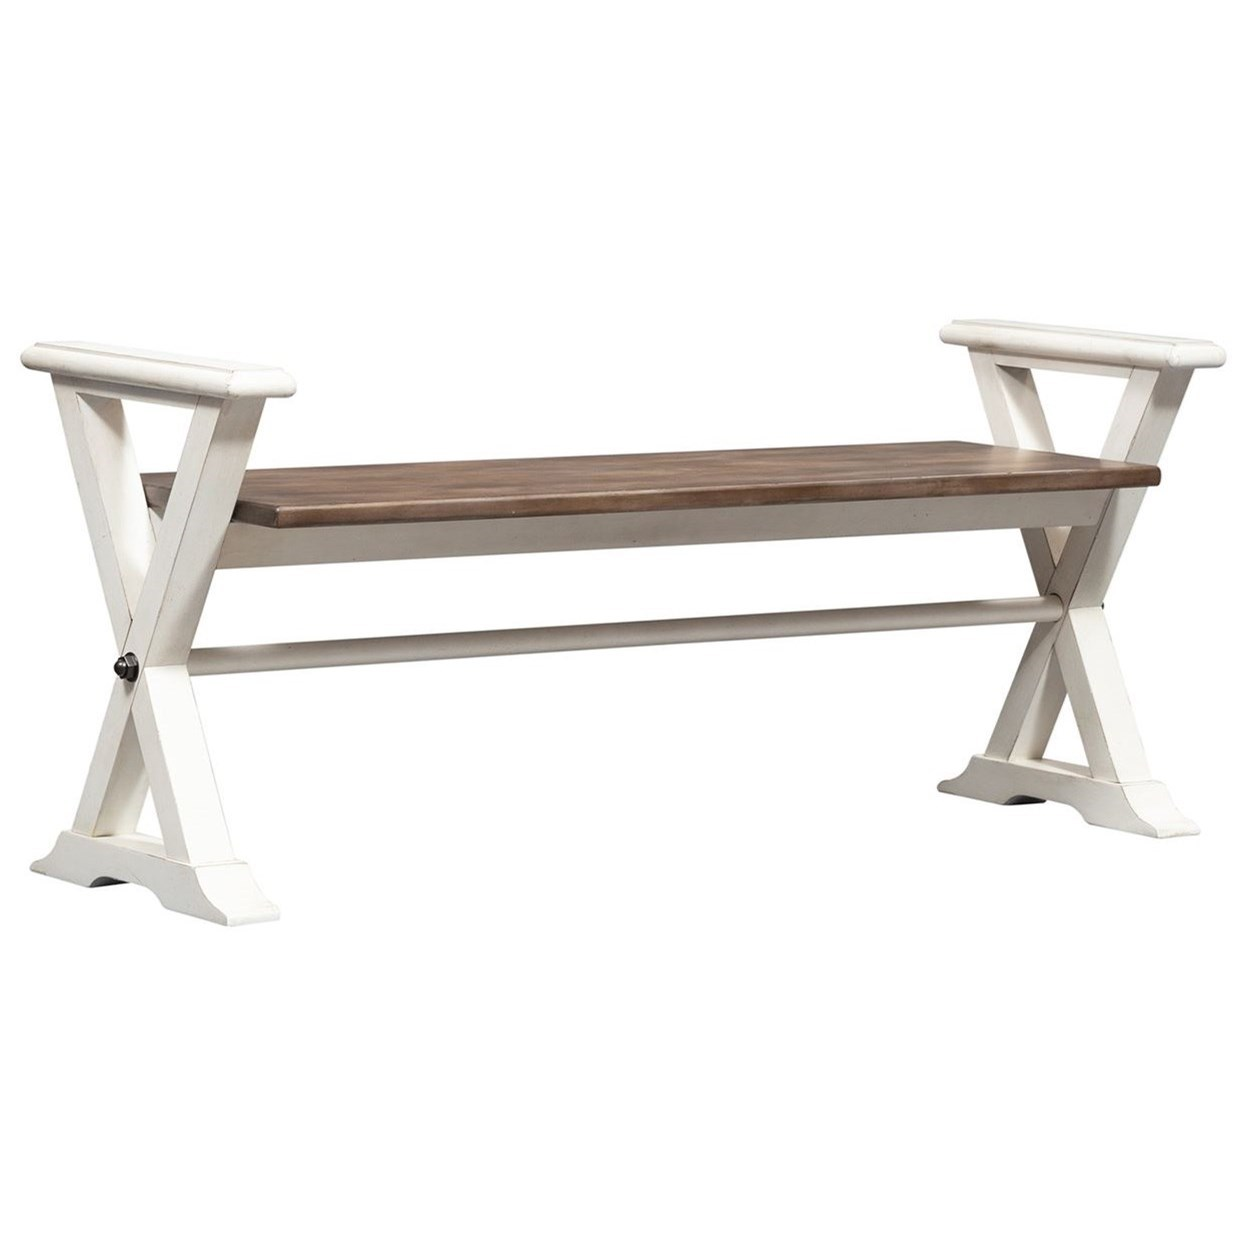 Abbey Road Bed Bench by Libby at Walker's Furniture